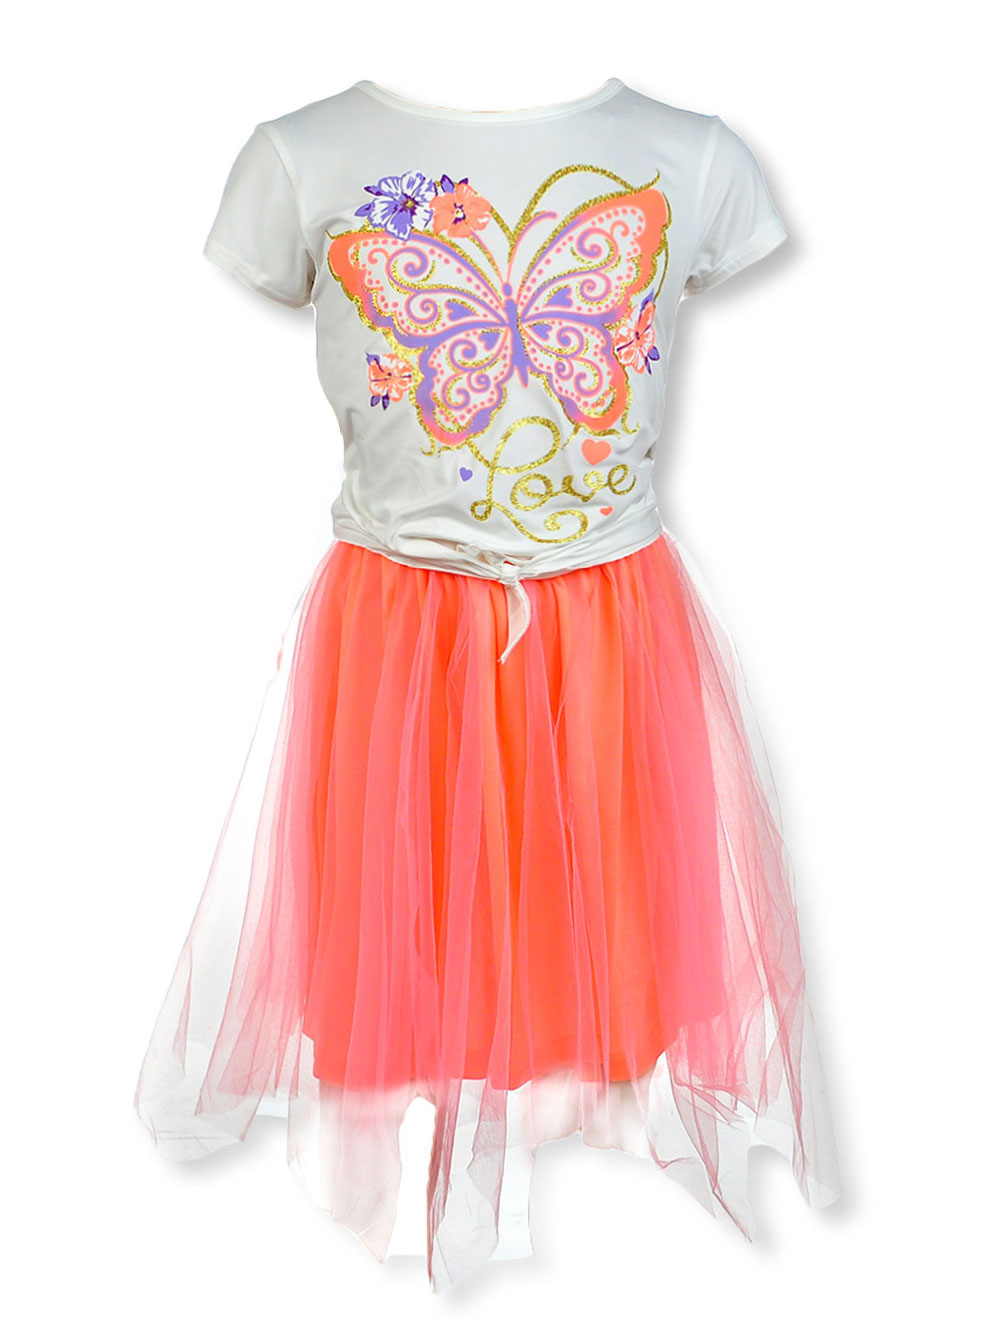 Size 3t Skirt Sets for Girls